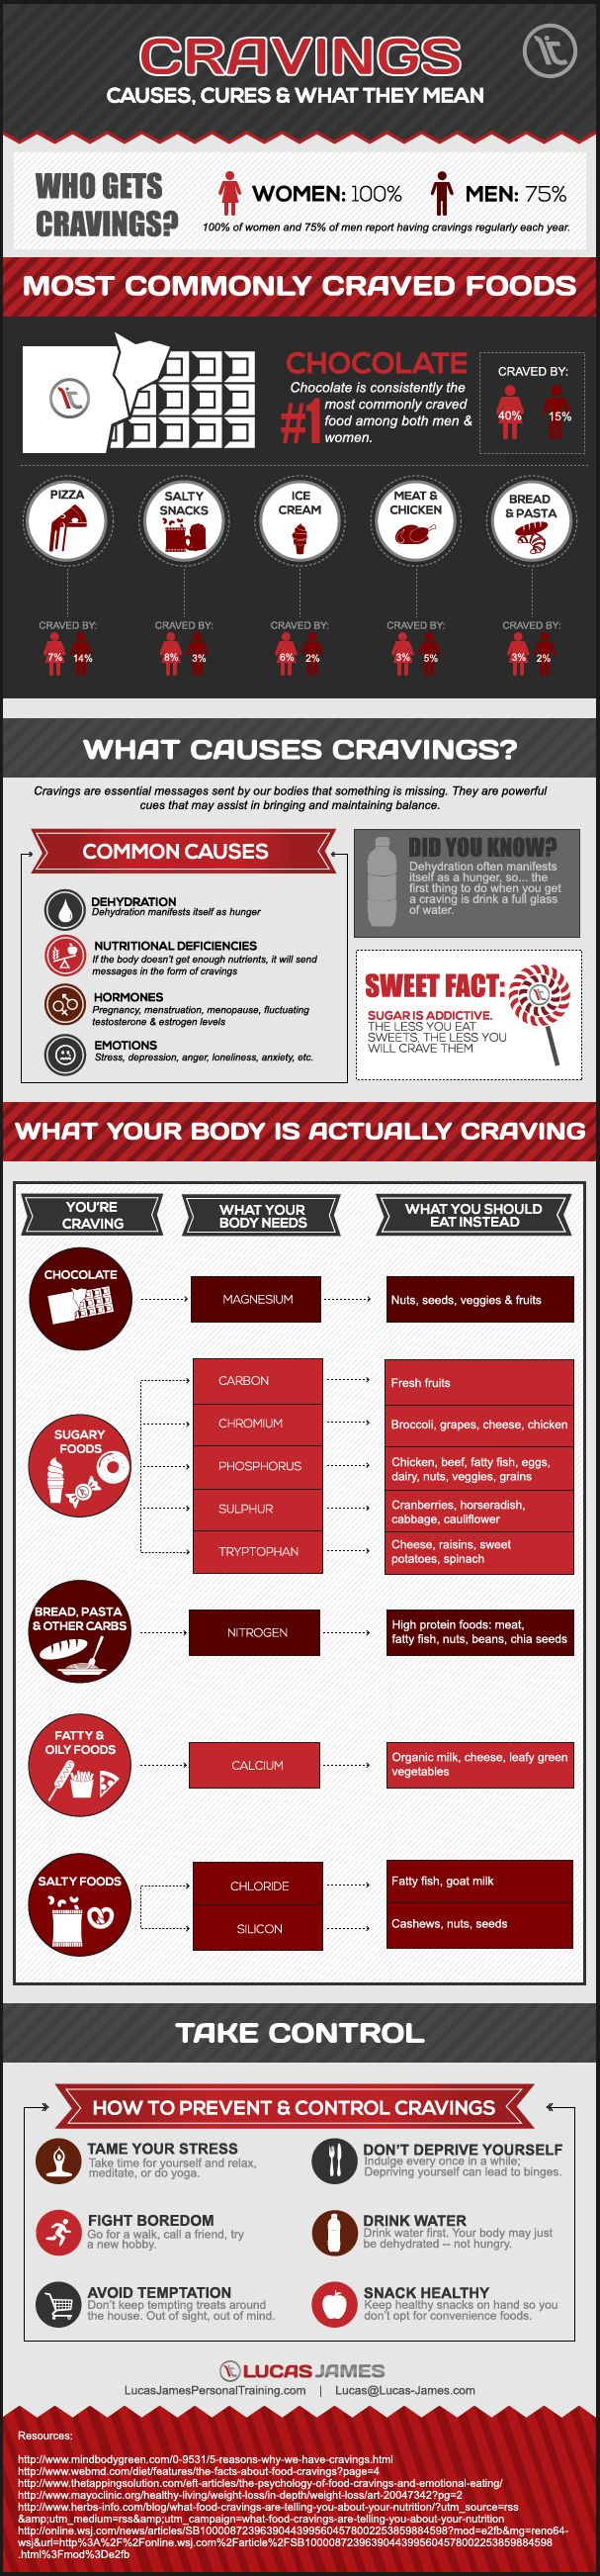 We all experience cravings at one time or another - some healthy and some not so healthy. Some of the most commonly craved foods include chocolate, pizza, salty snacks, ice cream (a favorite of mine), and pastas. But what do these cravings mean? They are in fact an essential messages sent to our bodies that something is missing. Cravings are powerful cues that may assist in bringing and maintaining balance.